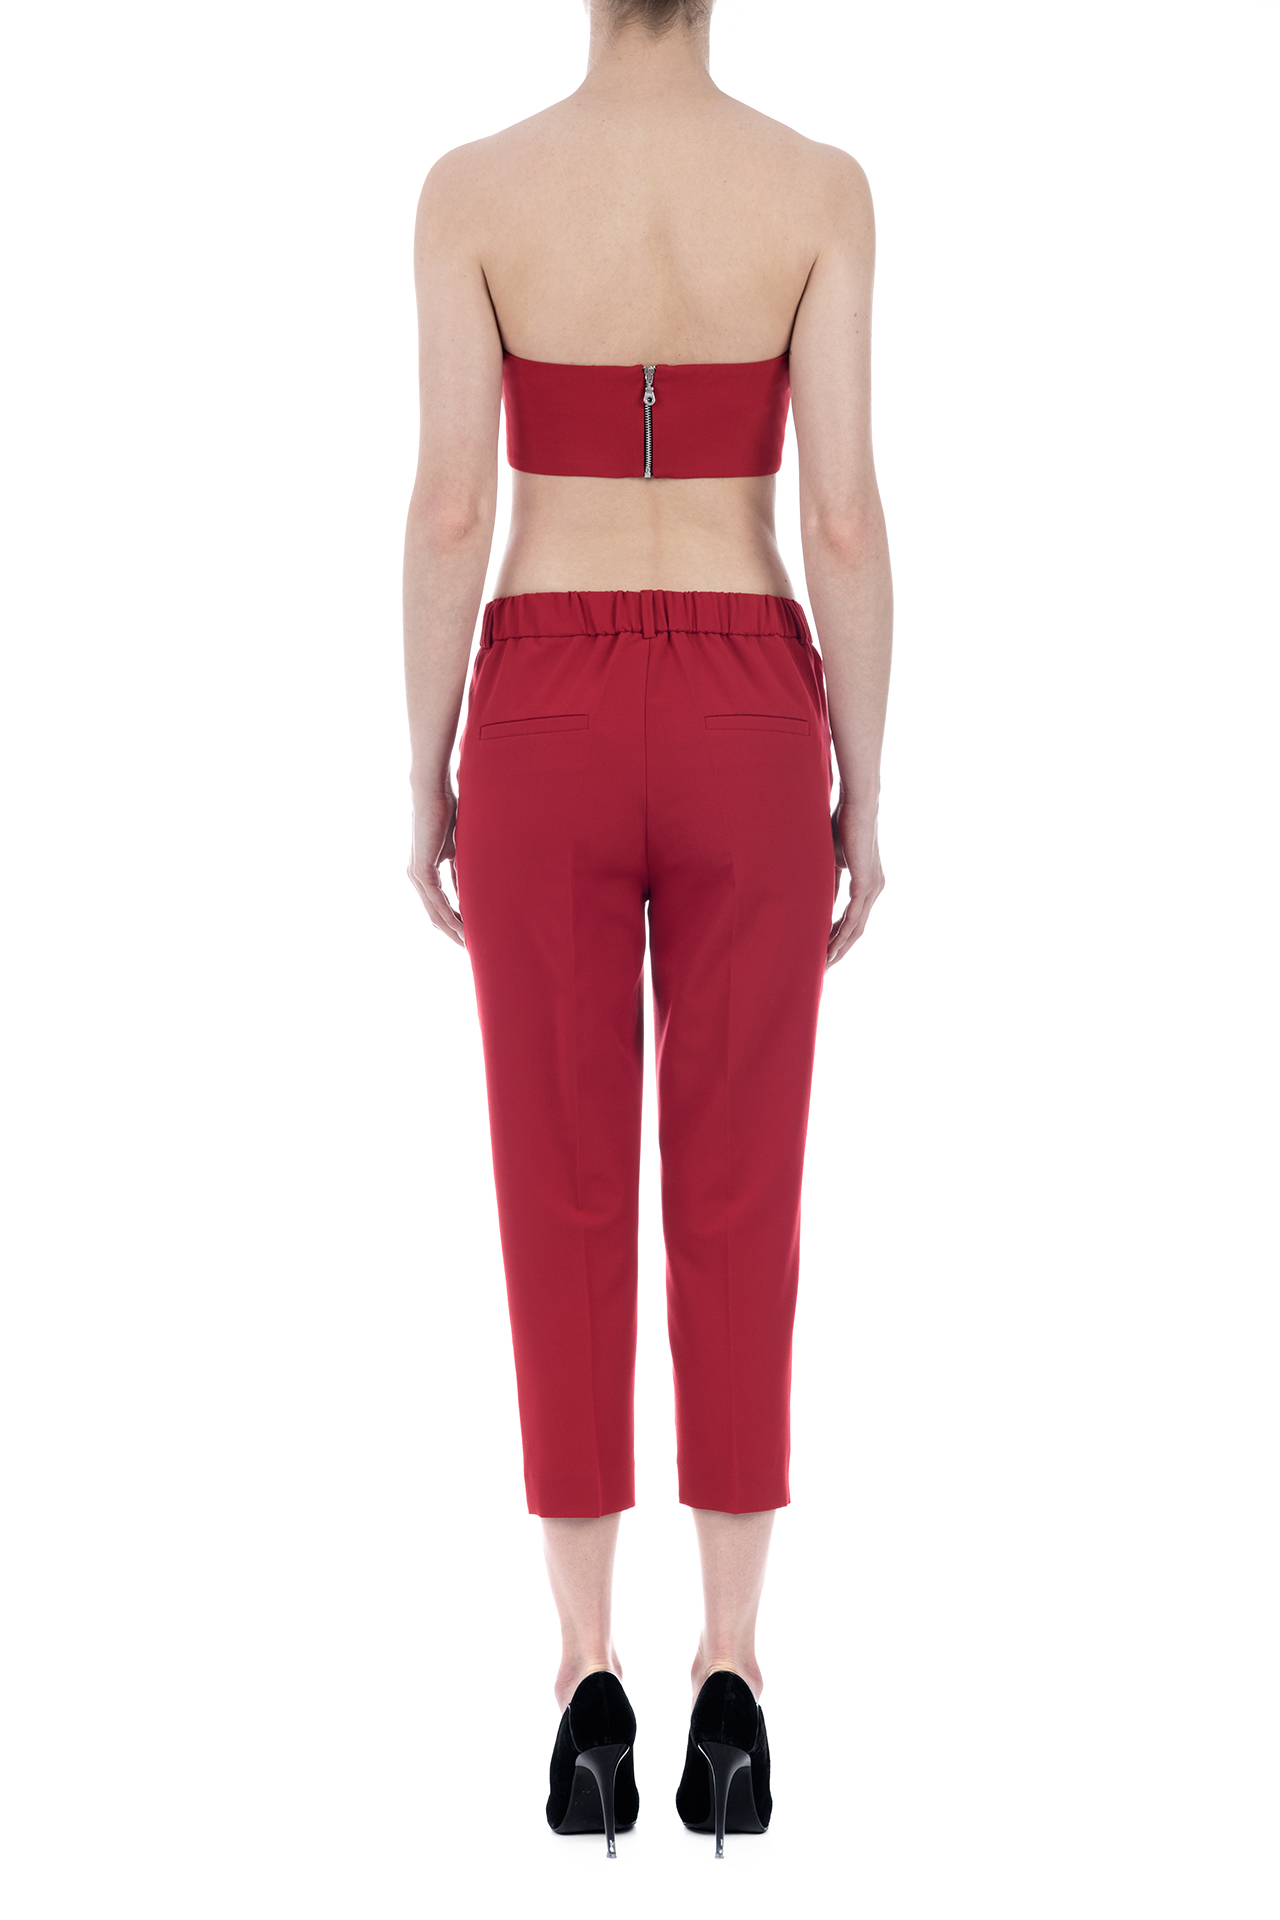 PANT KANT RED 3